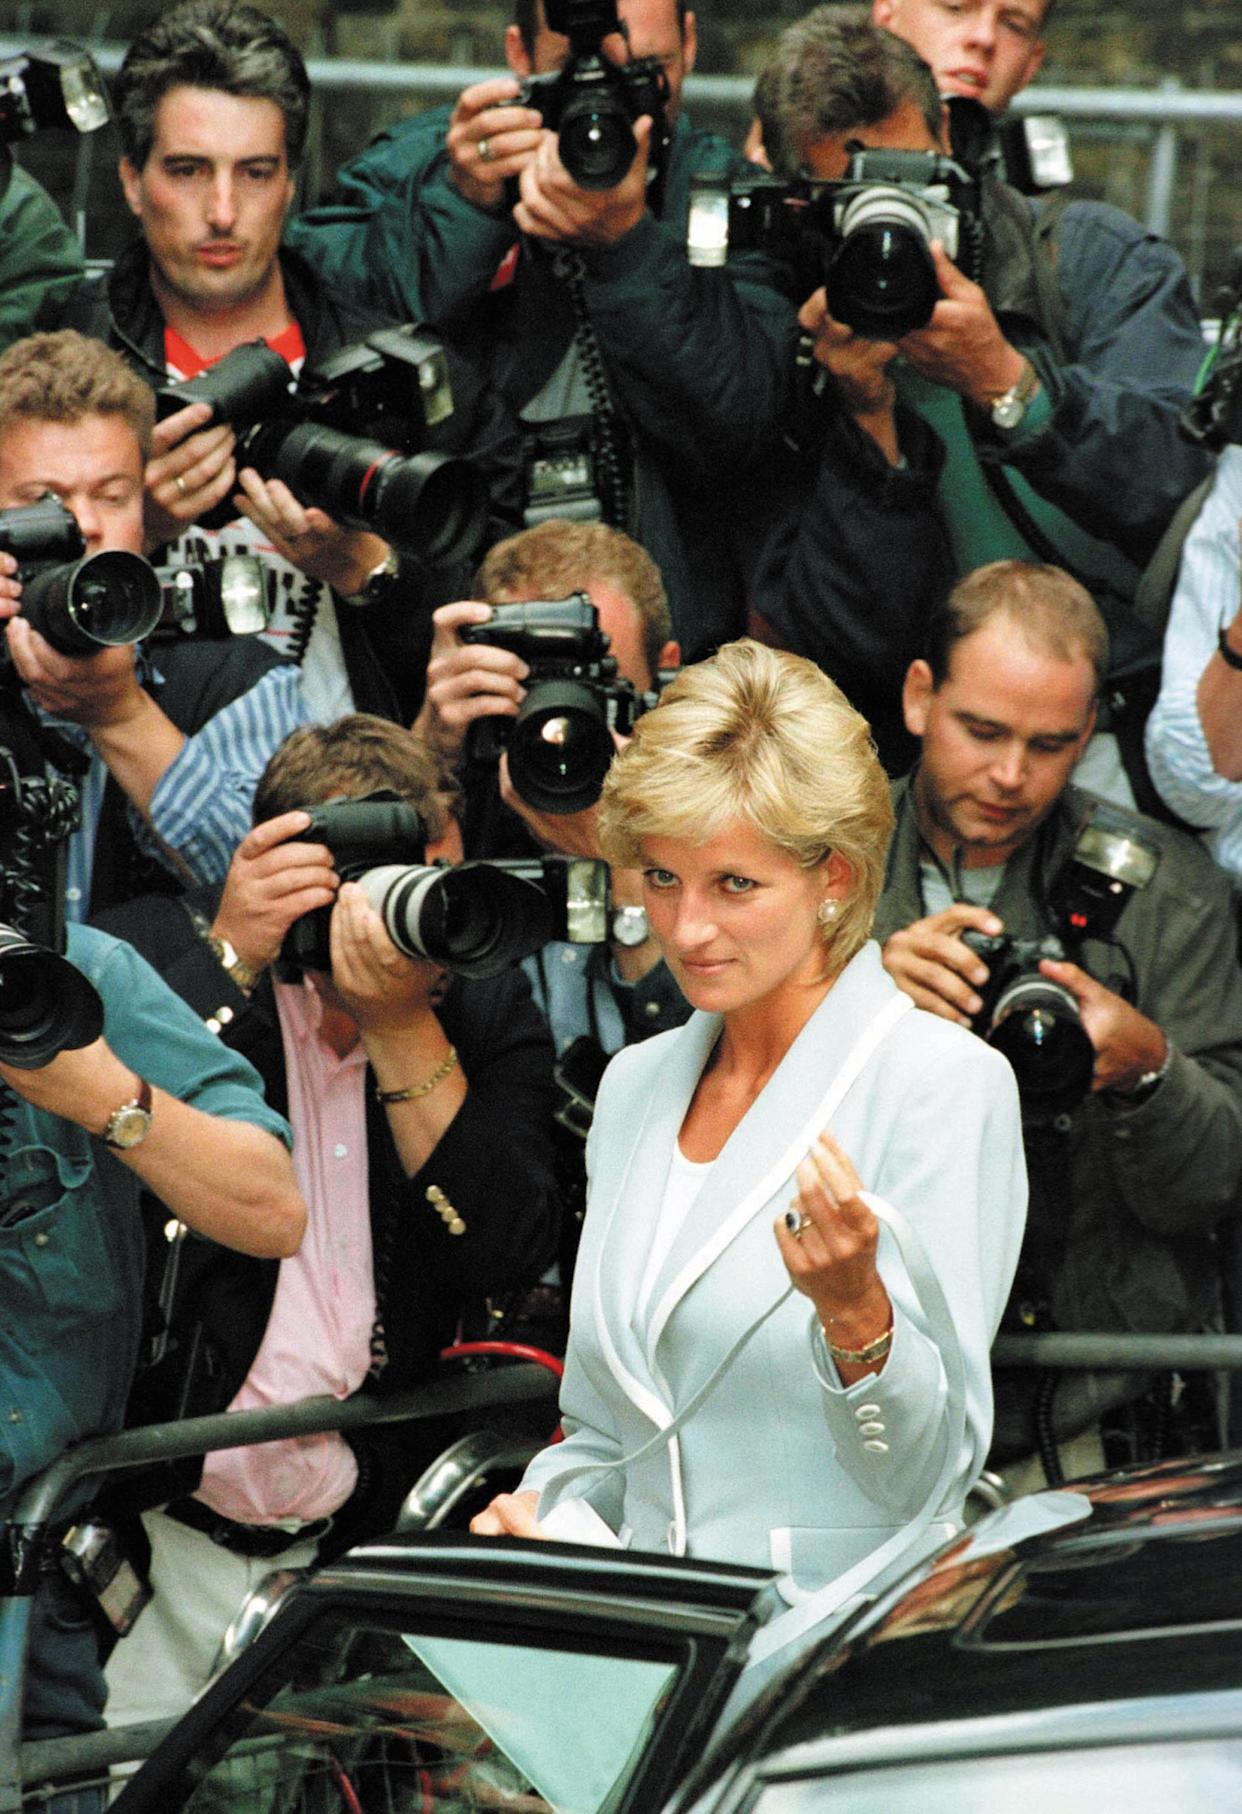 FILE PHOTO - Princess Diana is surrounded by paparazzi as she arrives at the English National Ballet in London, August 28, 1996.  PP04010012  AS